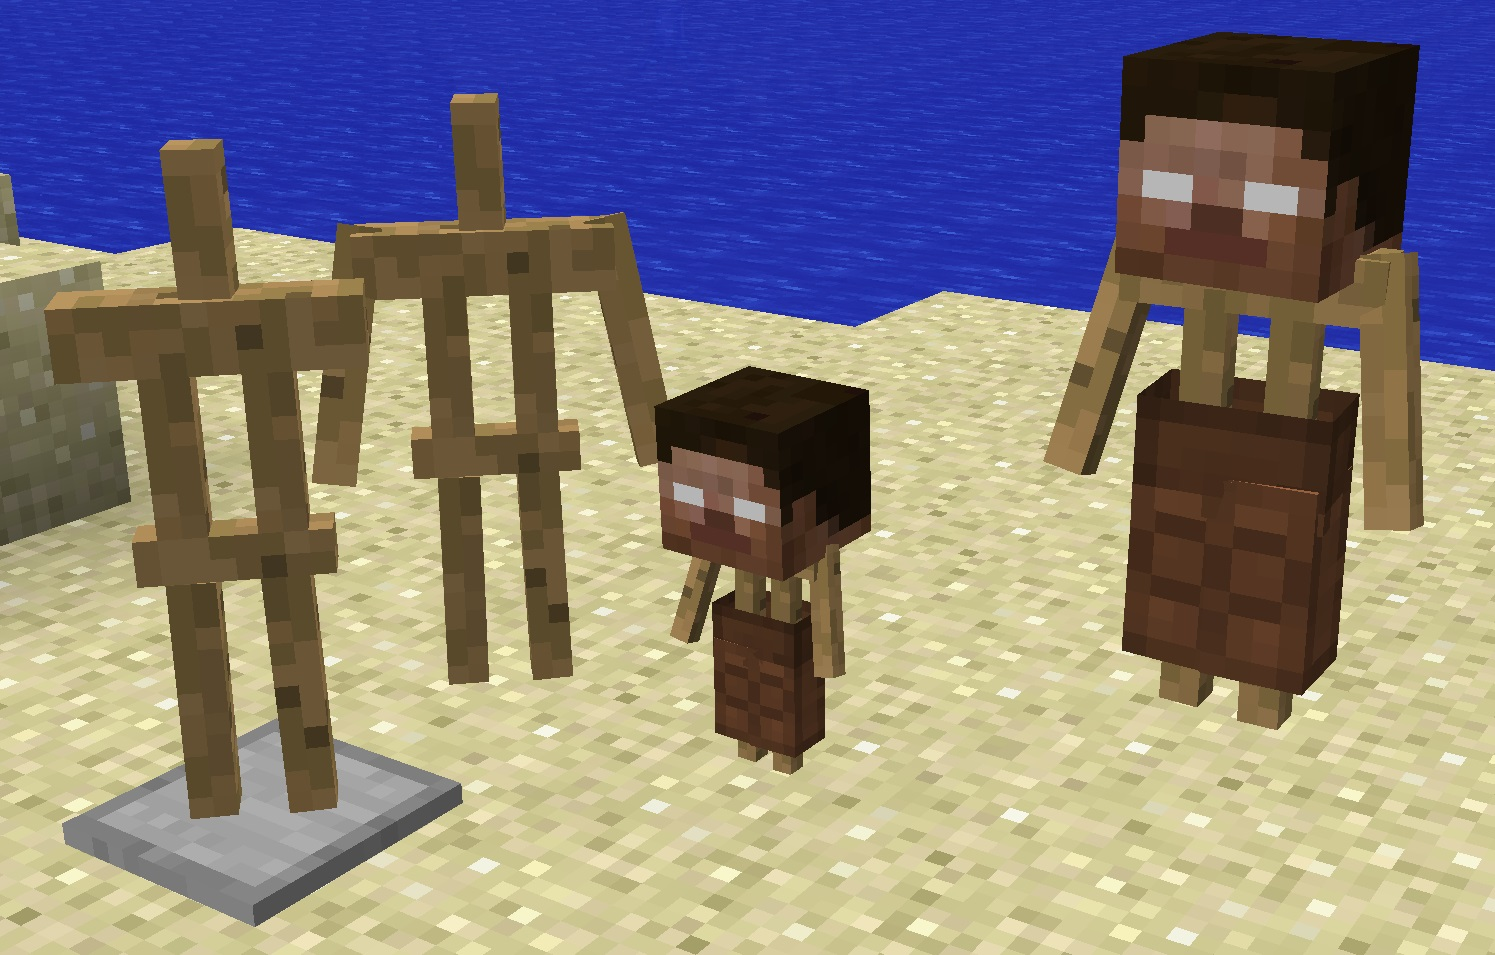 1478690902_459_Quality-Order-Mod-for-Minecraft-1.10.21.7.10 Quality Order Mod for Minecraft 1.10.2/1.7.10